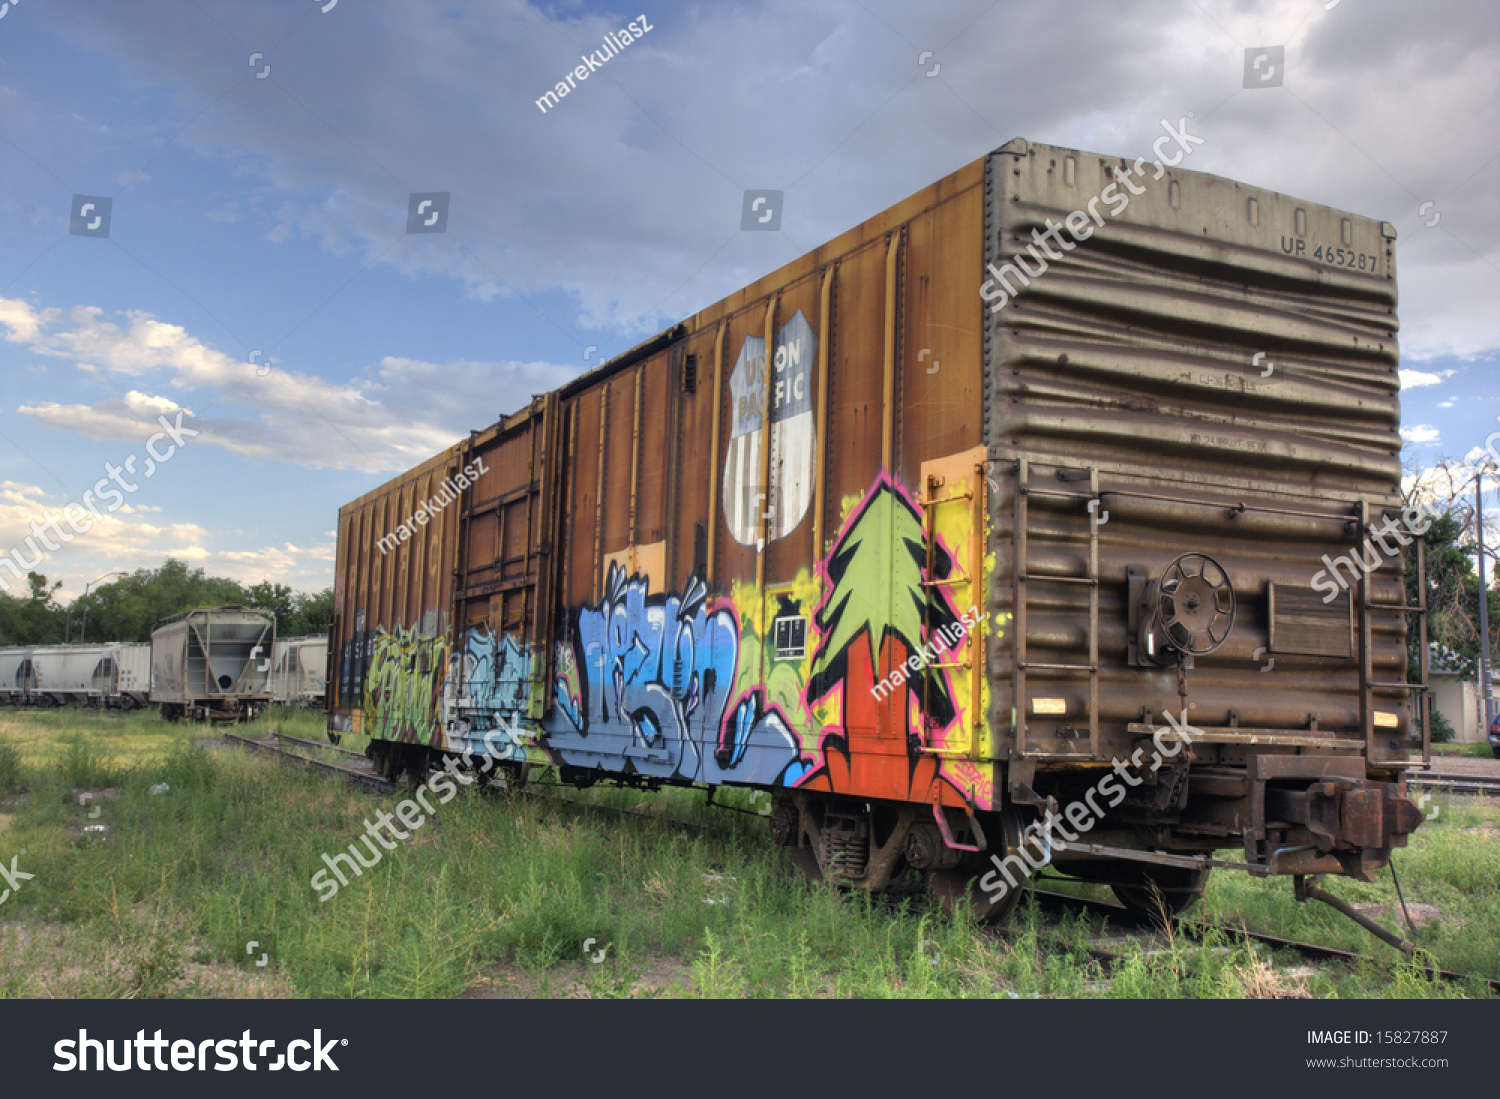 Union Pacific Railroad Car Covered With Graffiti On A